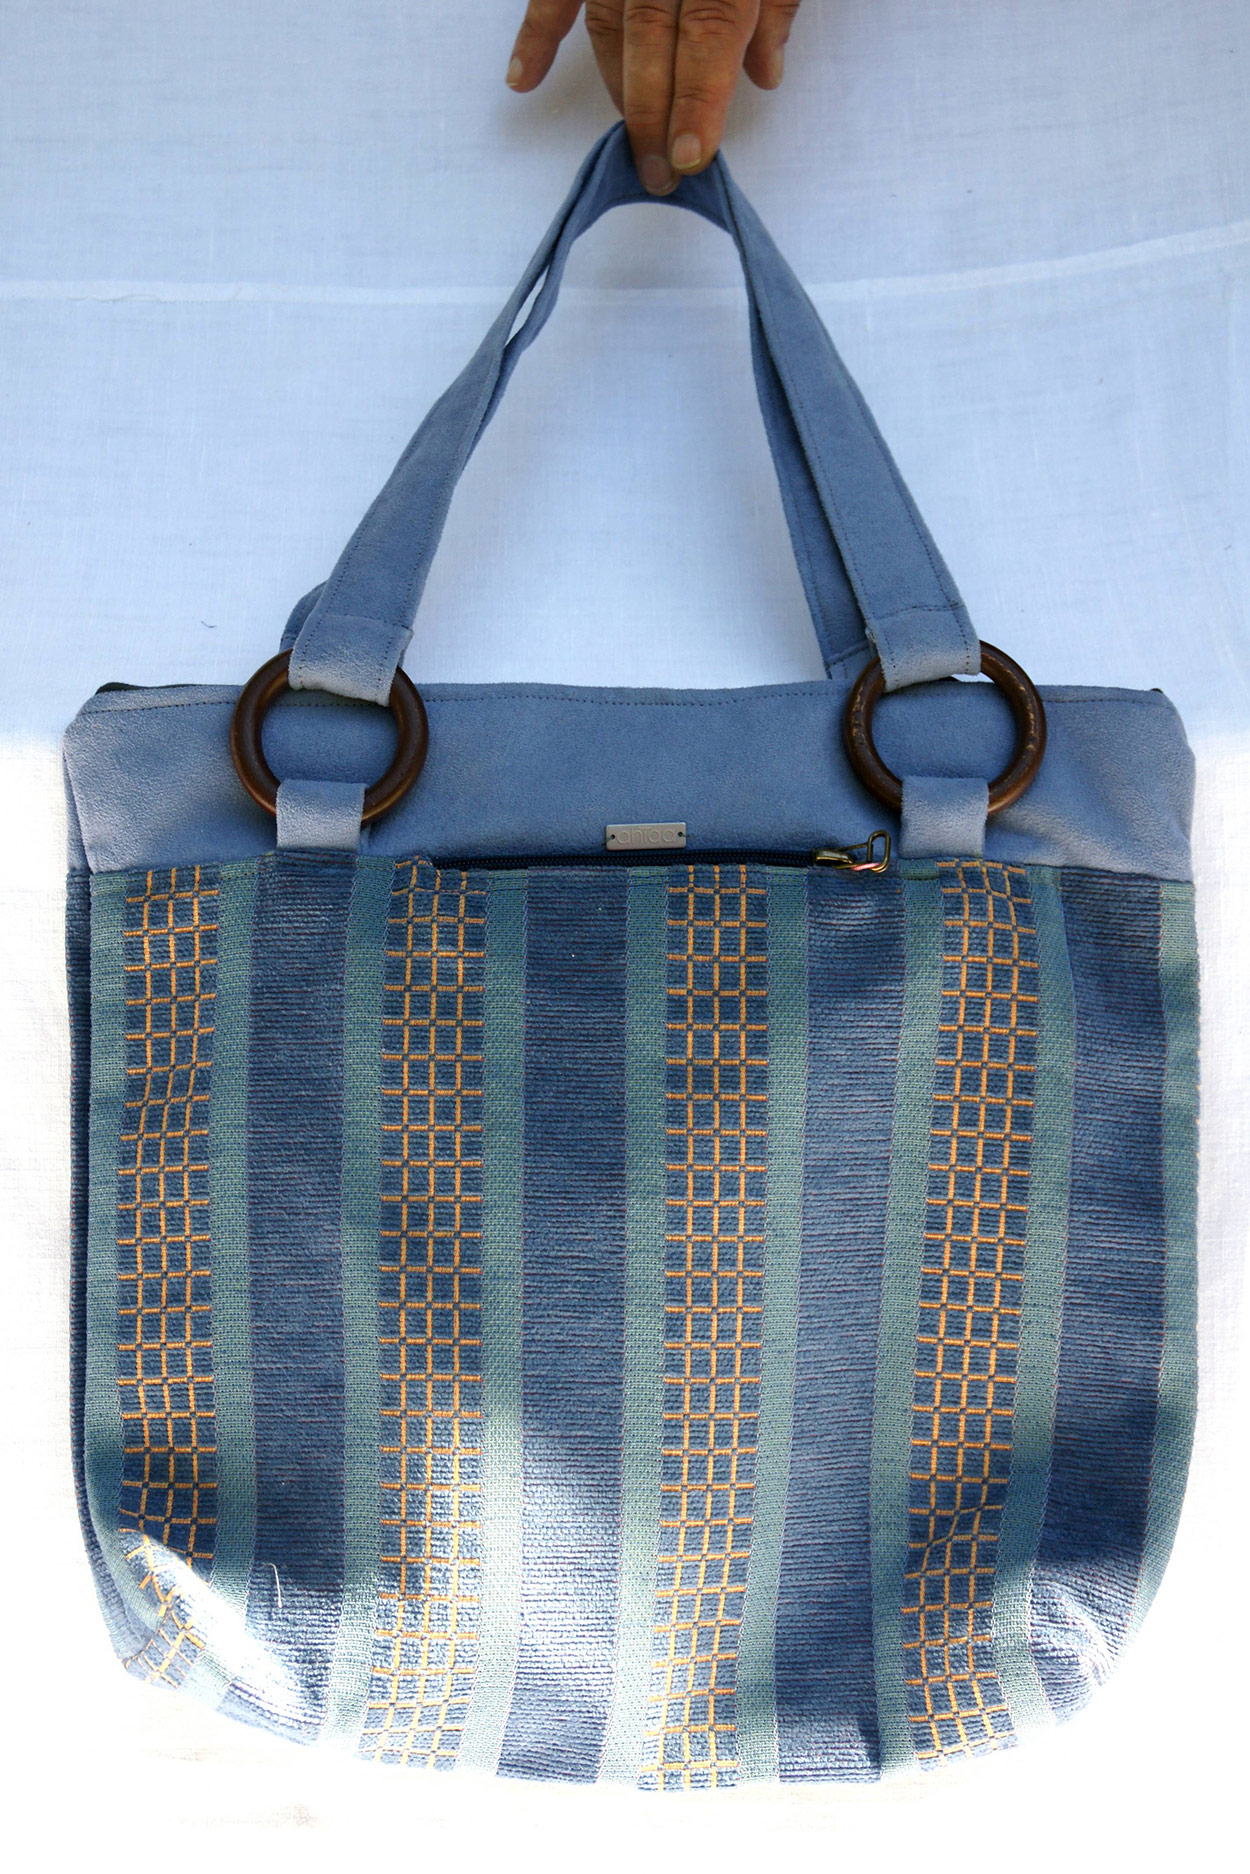 Citybags-(5)